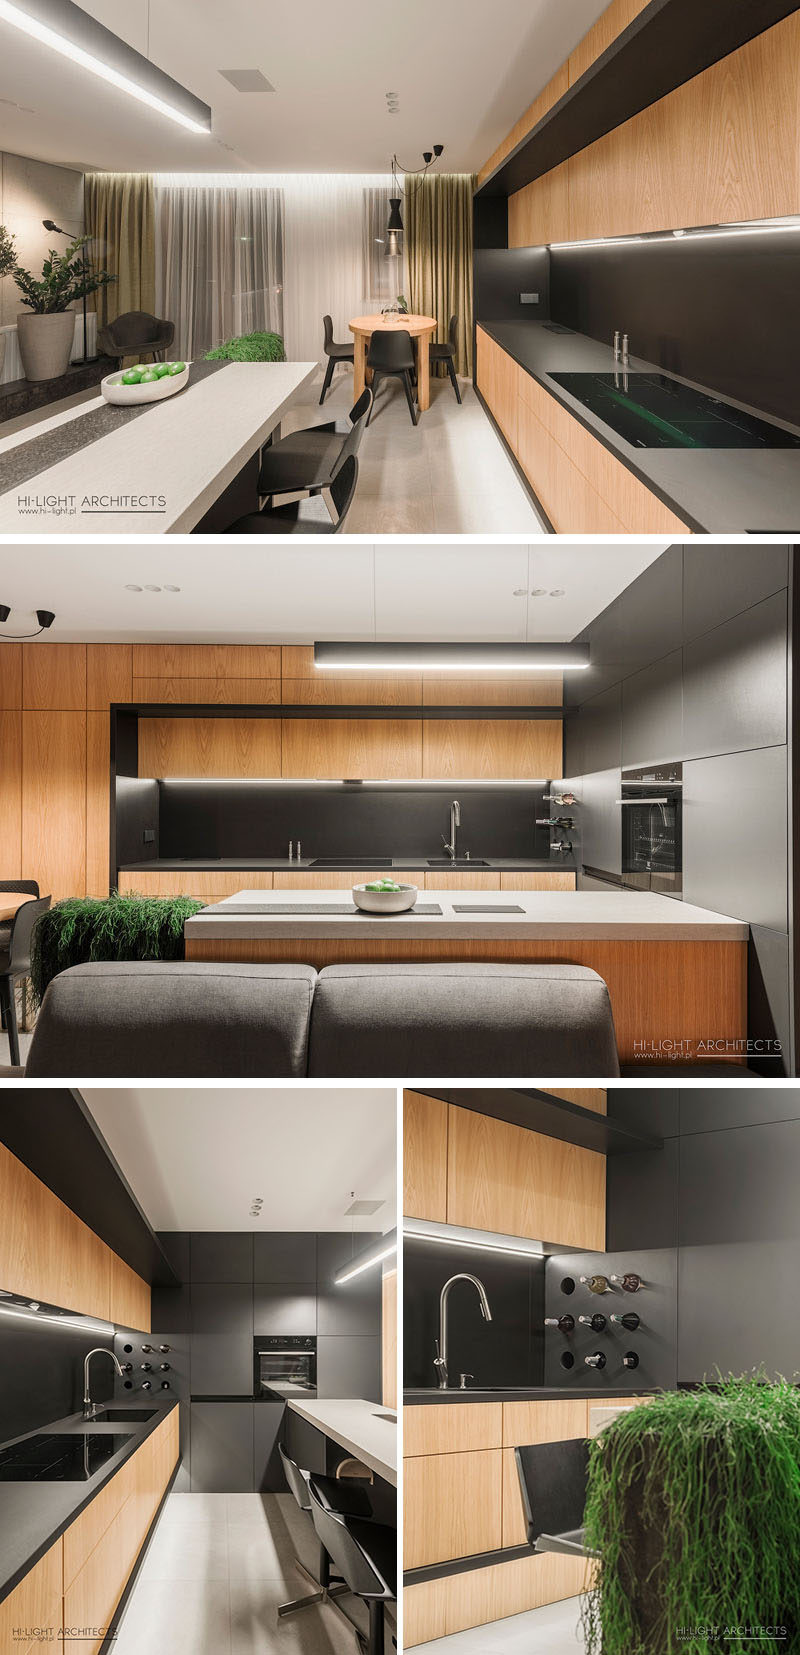 In this small and modern kitchen, black countertops contrast the wood cabinetry, while white countertops designate a bar area. At the end of the kitchen, there's a built-in wine rack. #ModernKitchen #KitchenDesign